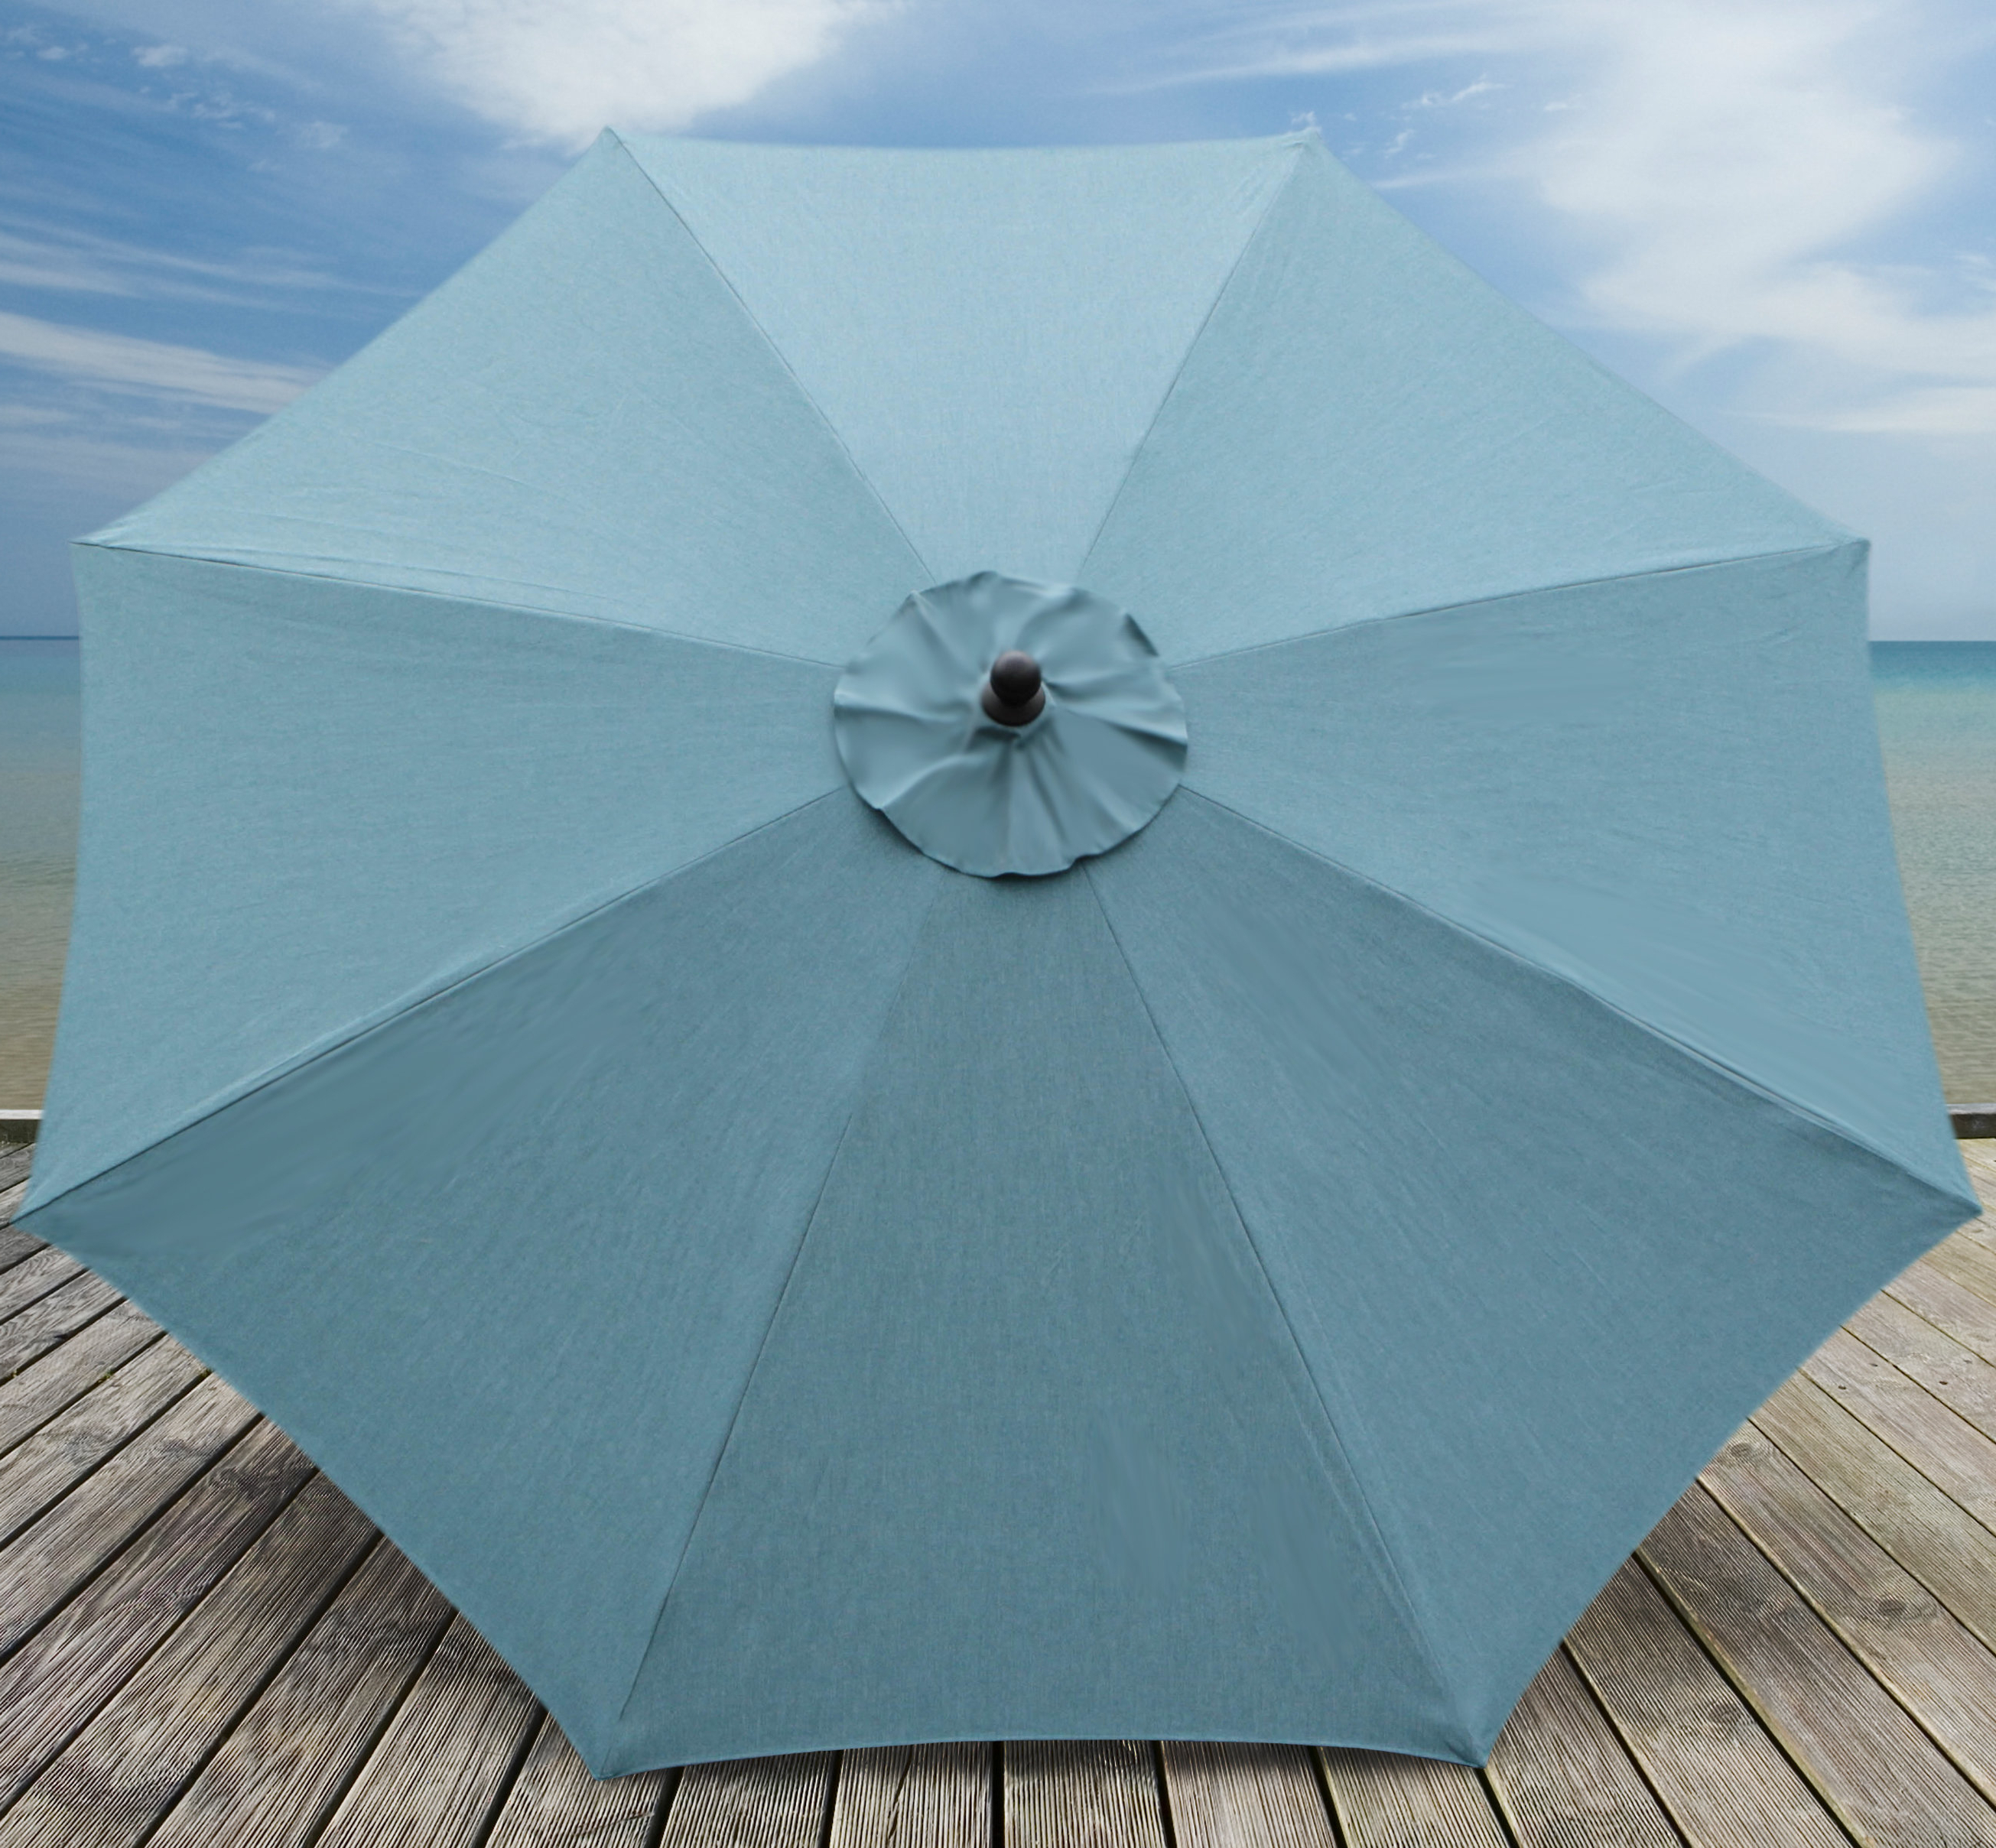 Newest Beachcrest Home Mucci Madilyn 10' Market Sunbrella Umbrella Within Mucci Madilyn Market Sunbrella Umbrellas (Gallery 4 of 20)